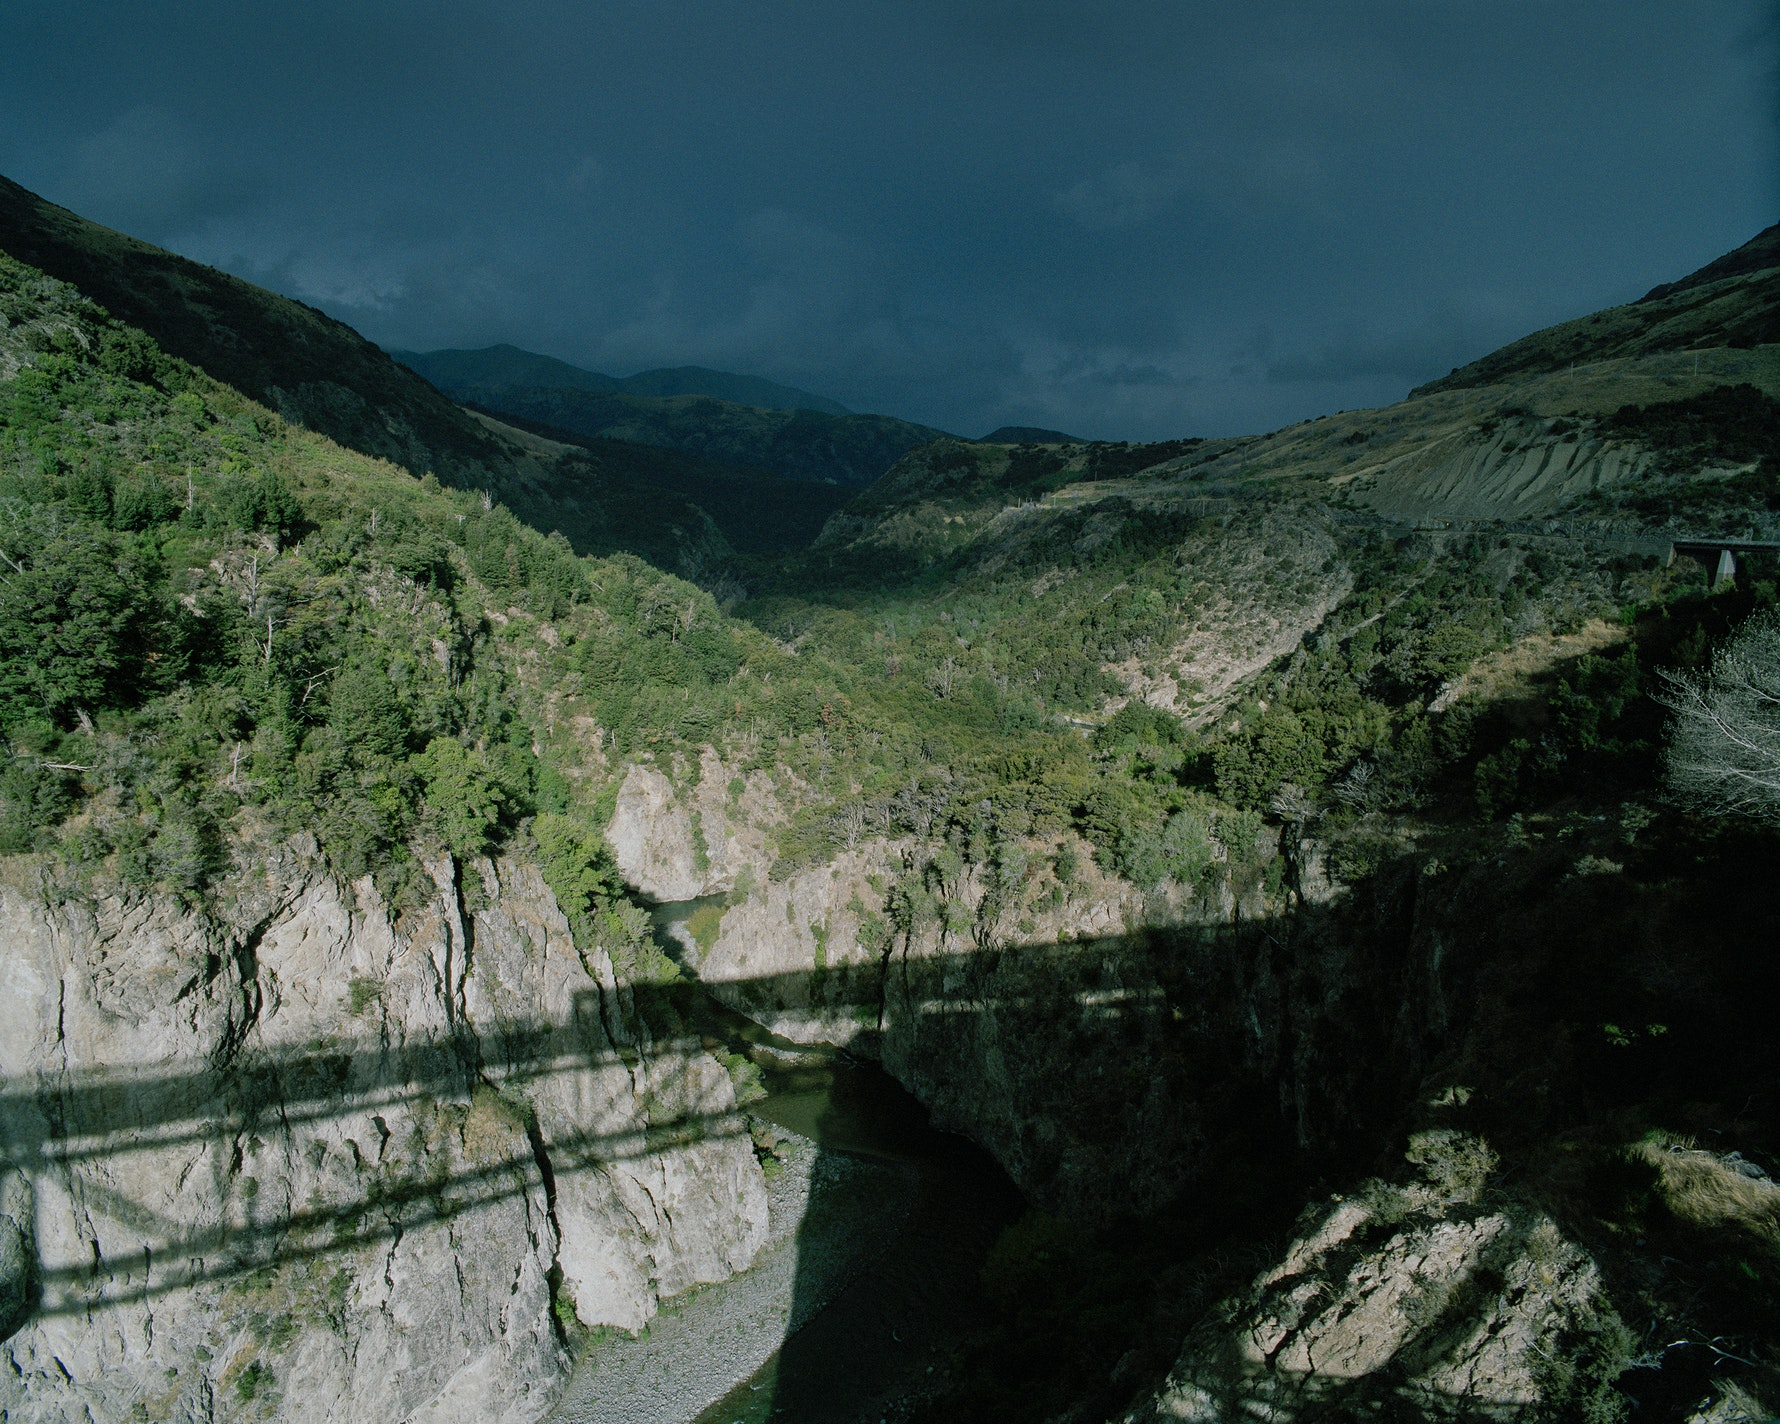 Waimakiri Gorge, from the Midland Line 2015